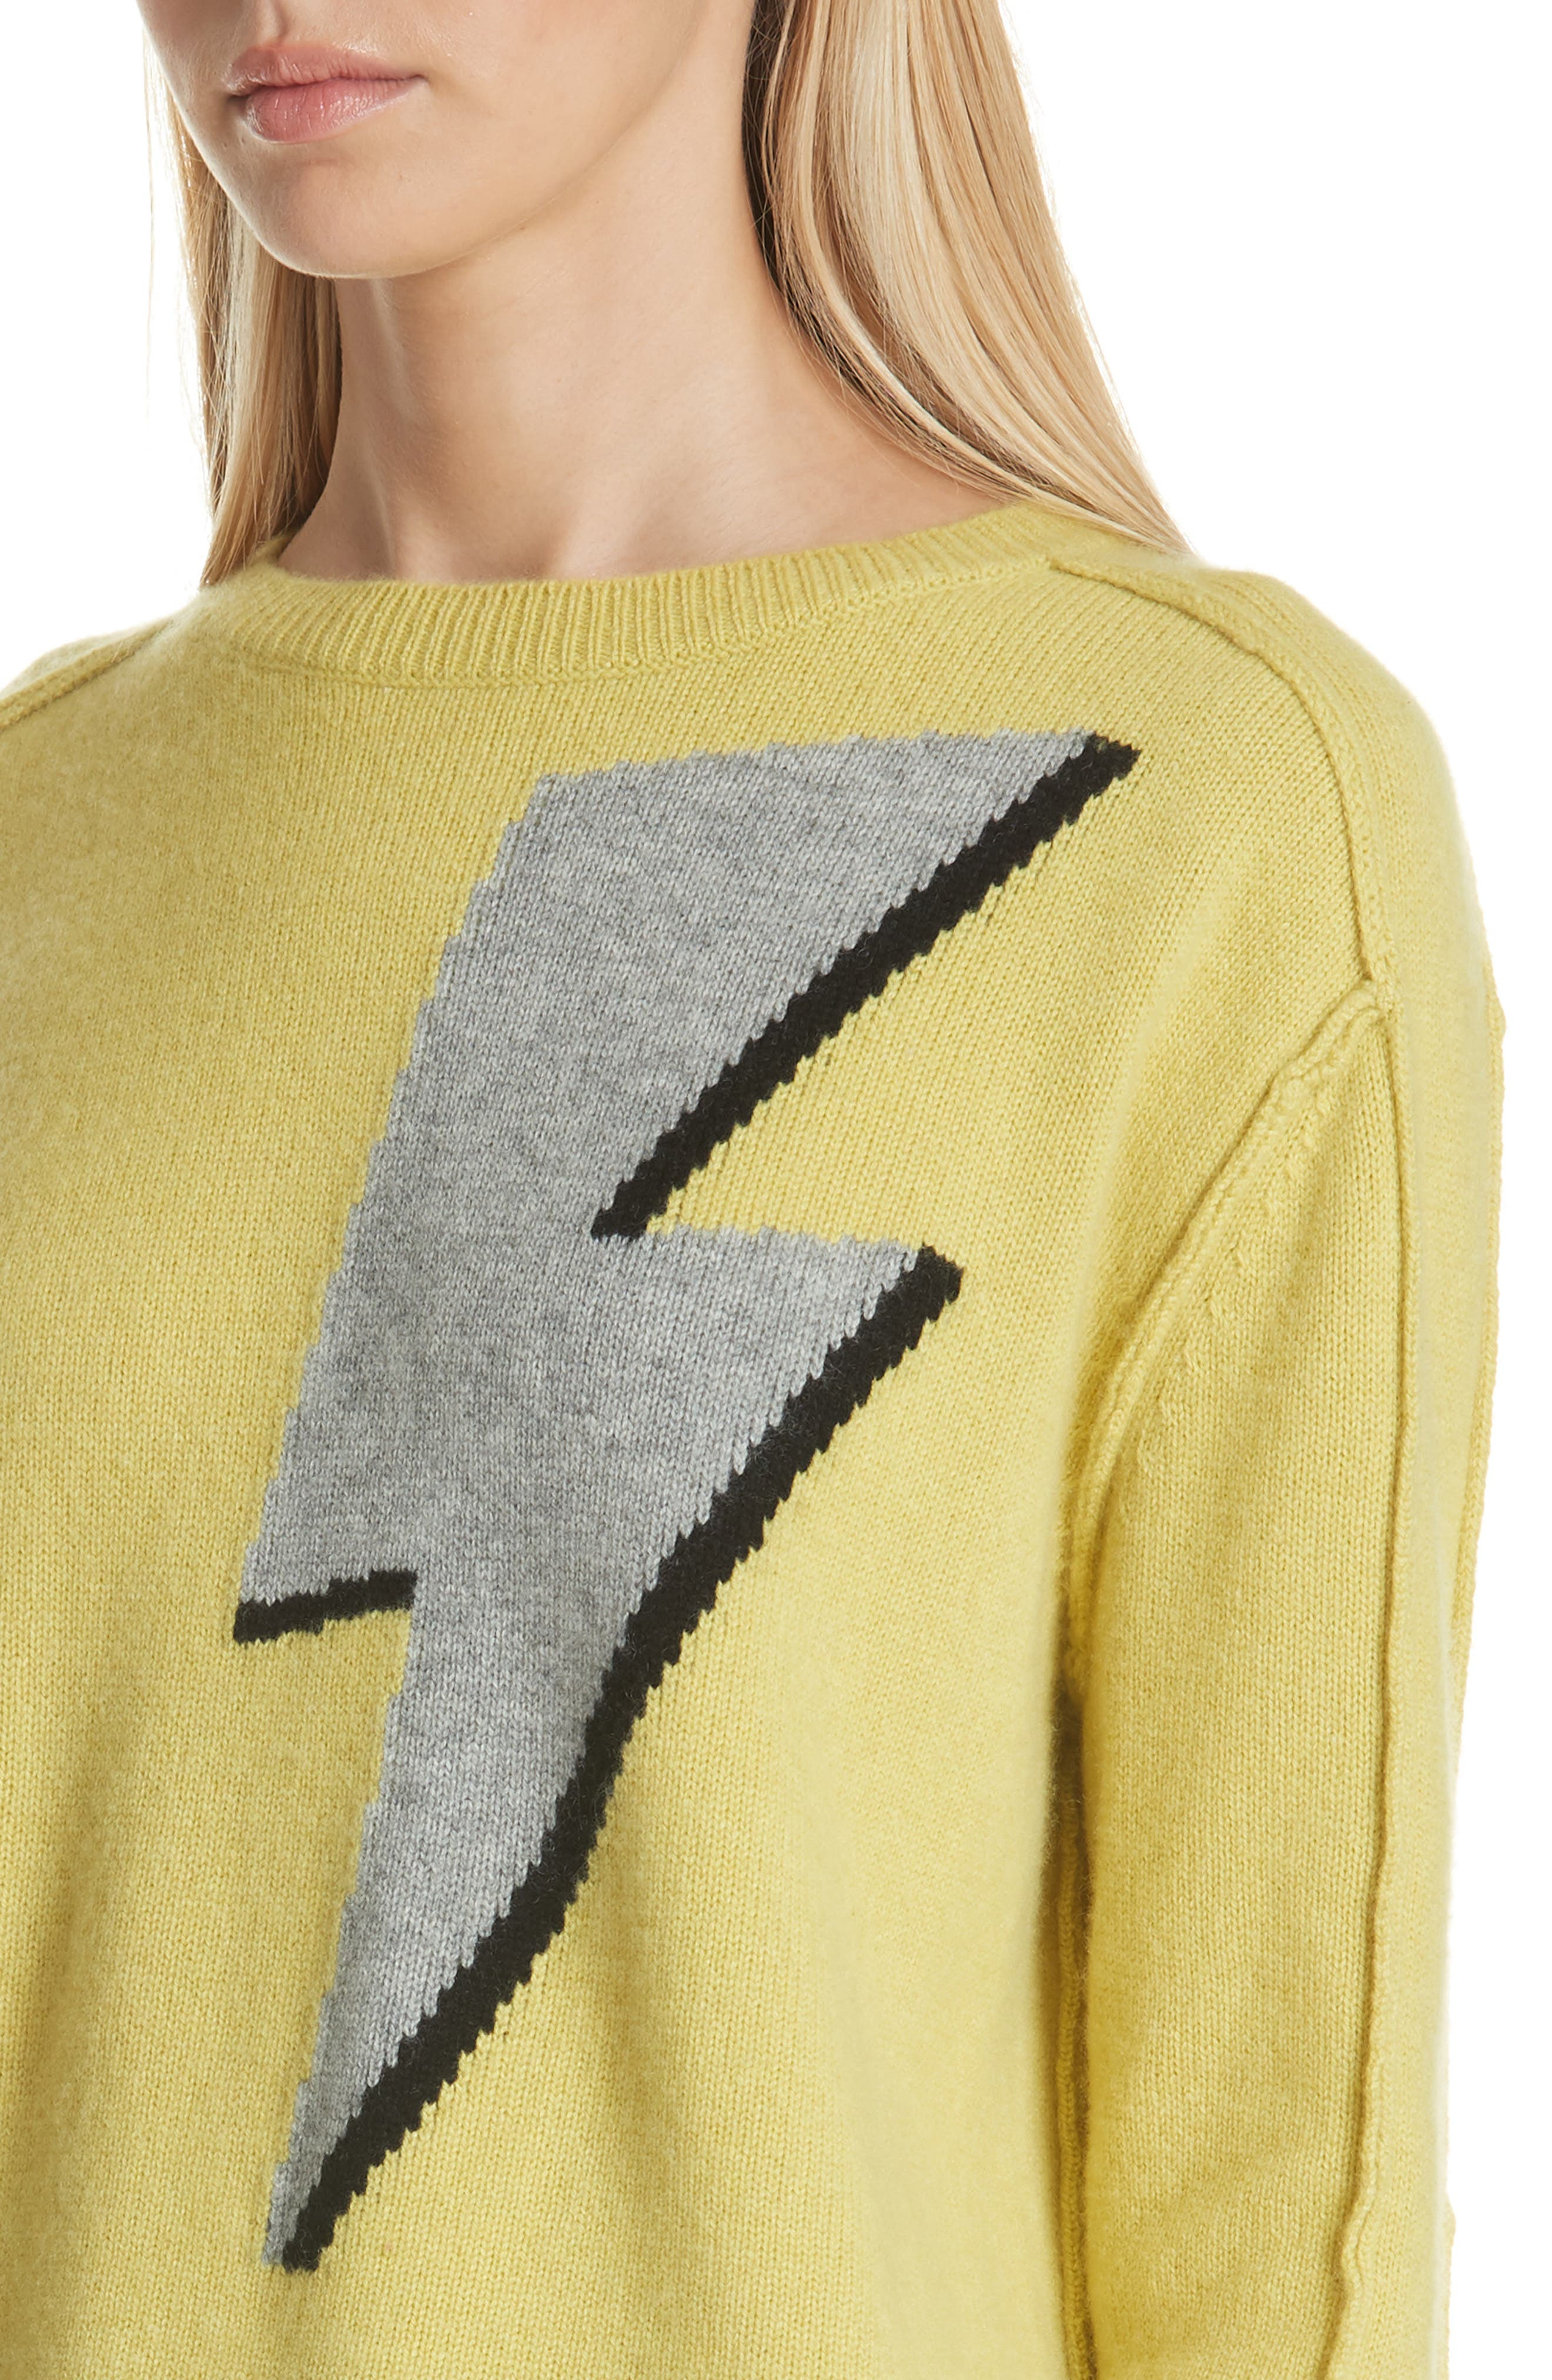 Lightning Bolt Wool & Cashmere Sweater,                             Alternate thumbnail 4, color,                             YELLOW/ GREY